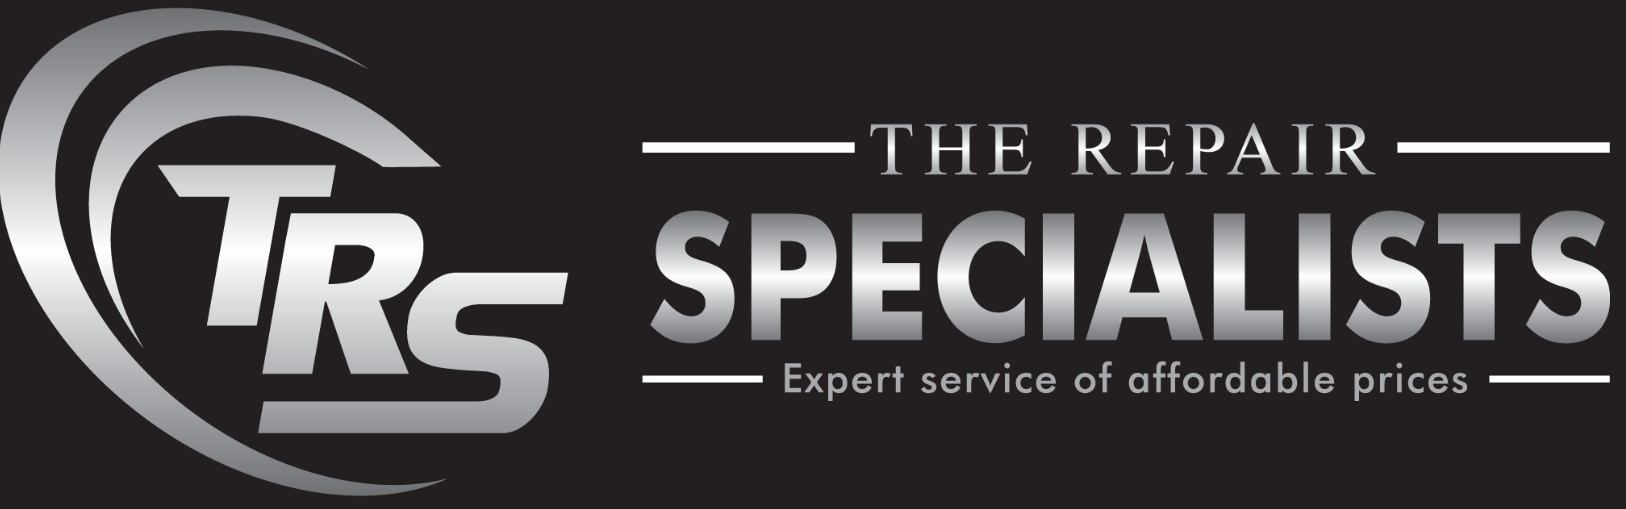 The Repair Specialists Limited